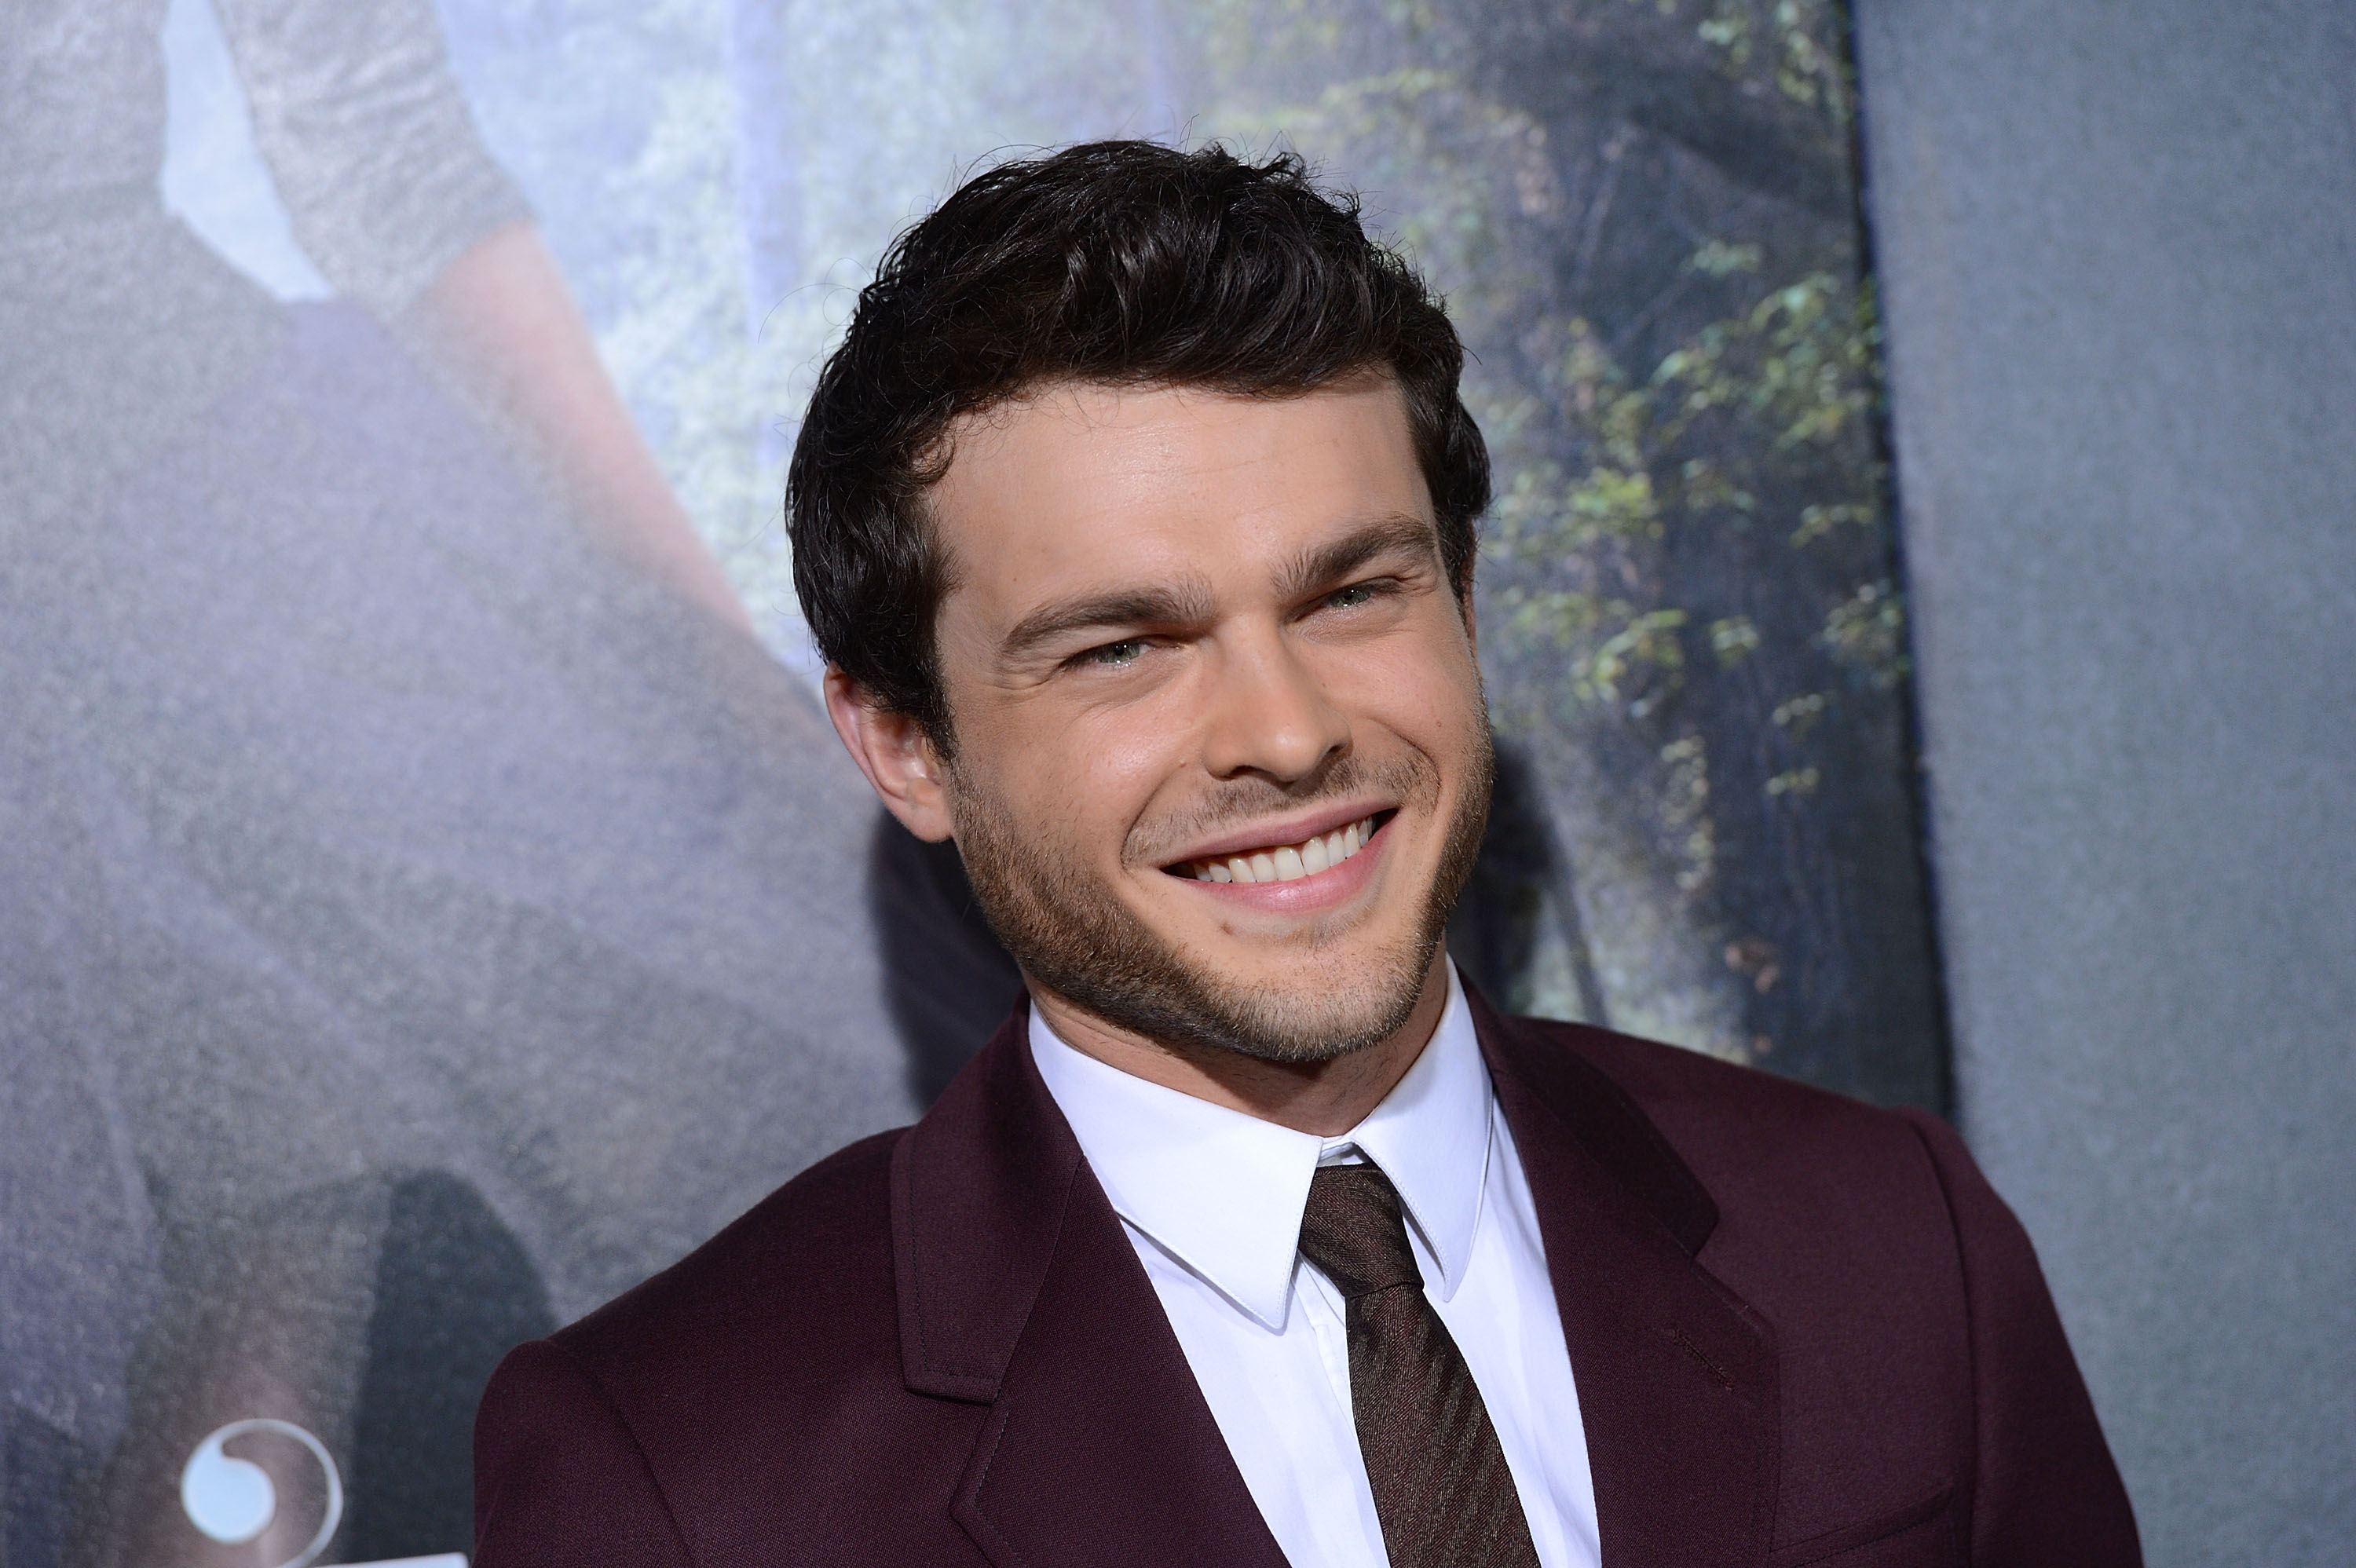 """HOLLYWOOD, CA - FEBRUARY 06: Actor Alden Ehrenreich attends the premiere of Warner Bros. Pictures' """"Beautiful Creatures"""" at TCL Chinese Theatre on February 6, 2013 in Hollywood, California. (Photo by Jason Kempin/Getty Images)"""